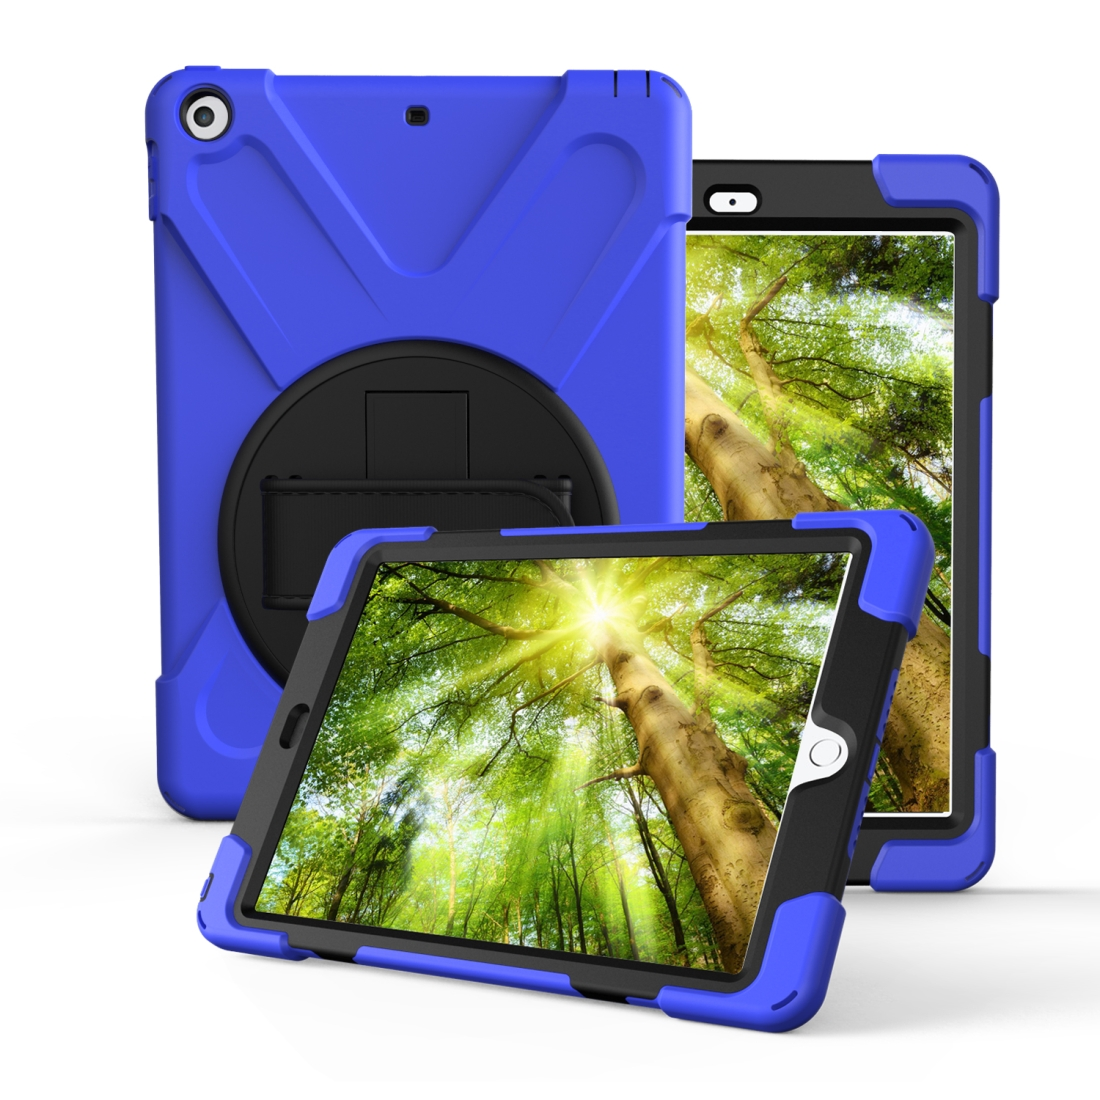 iPad 7th Generation Case (10.2 Inch) With A Protective Rotatable Design And Hand Strap (Dark Blue)